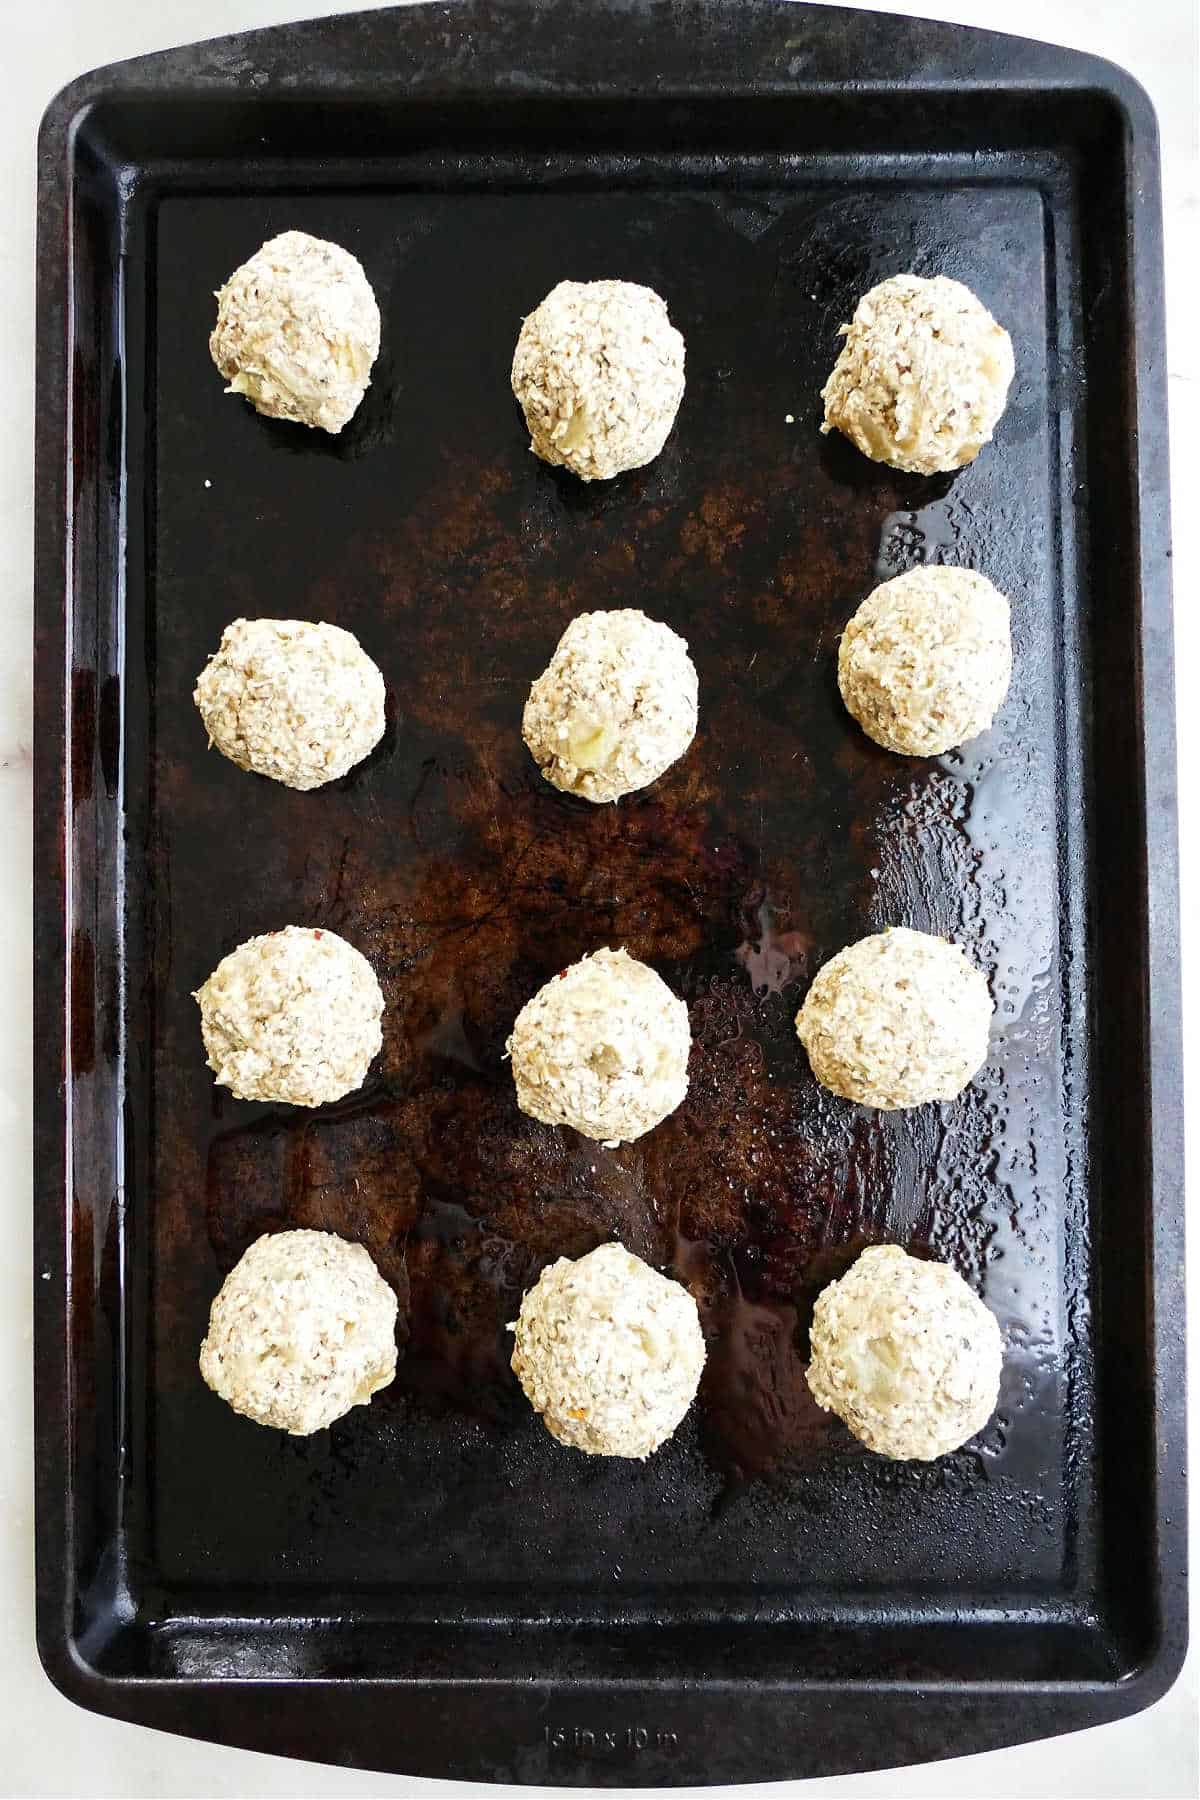 12 eggplant meatballs on a greased baking sheet before going into the oven